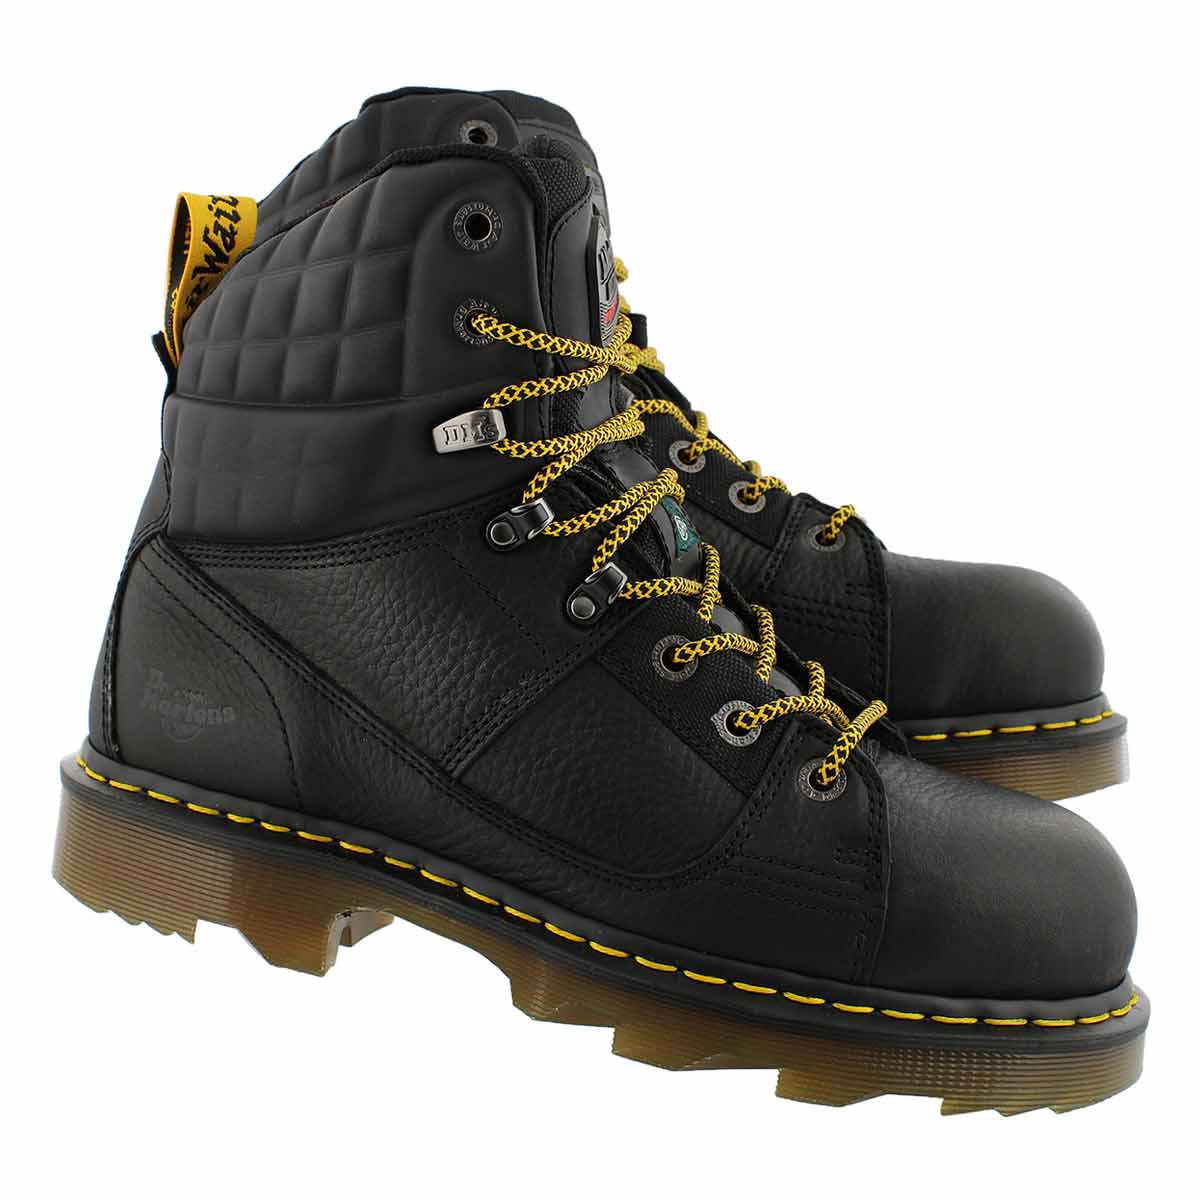 Mns Camber ST black CSA safety boot